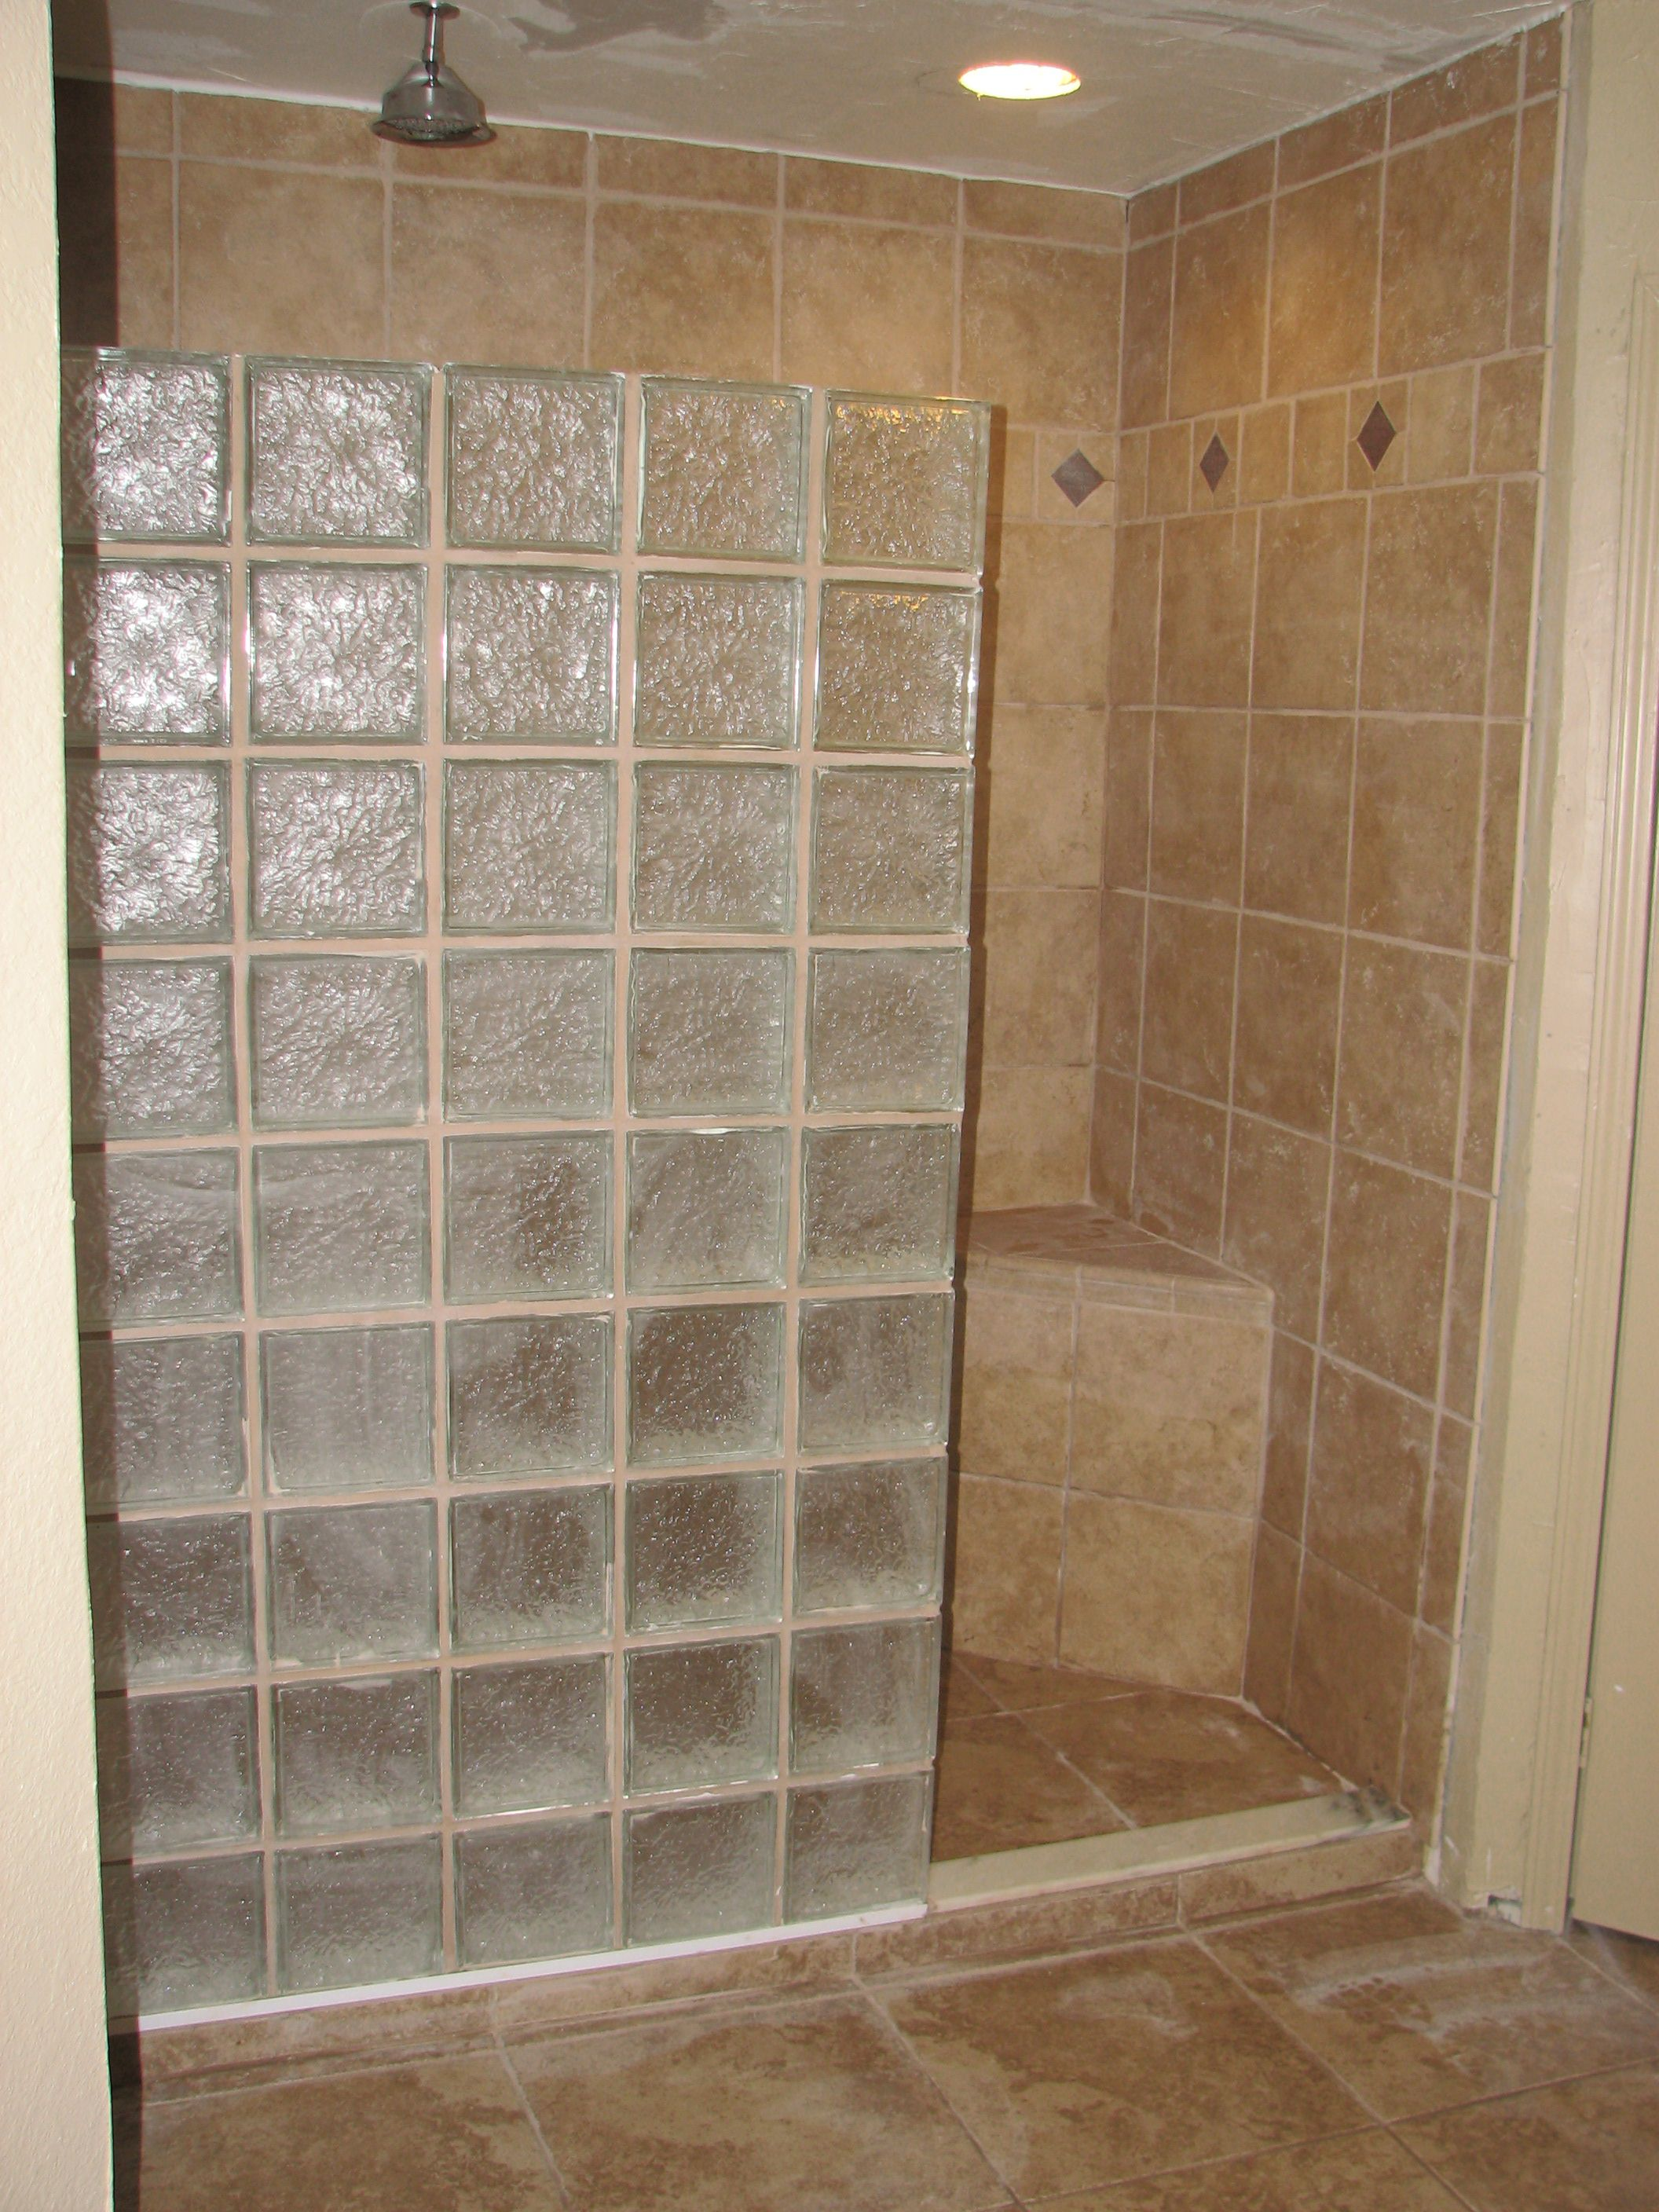 Renovate bathrooms - Bathroom Small Bathroom Remodeling Bathroom Remodel Construction And Handyman Services Shop Small Network Bathroom Renovations